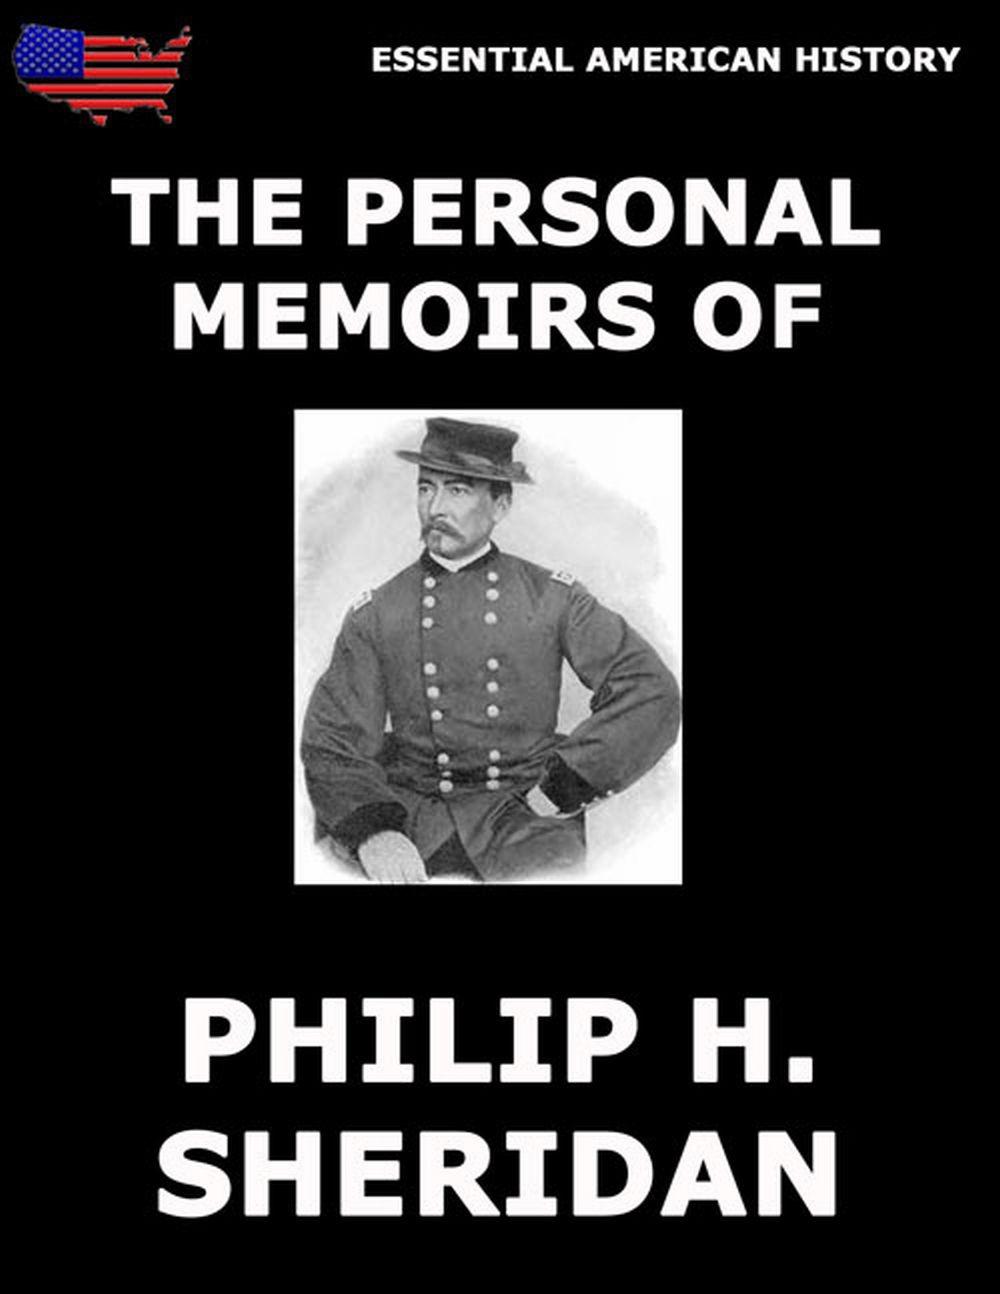 P. H. Sheridan The Personal Memoirs Of P. H. Sheridan h p pandey and s mishra toxicological aspects of deoxynivalenol